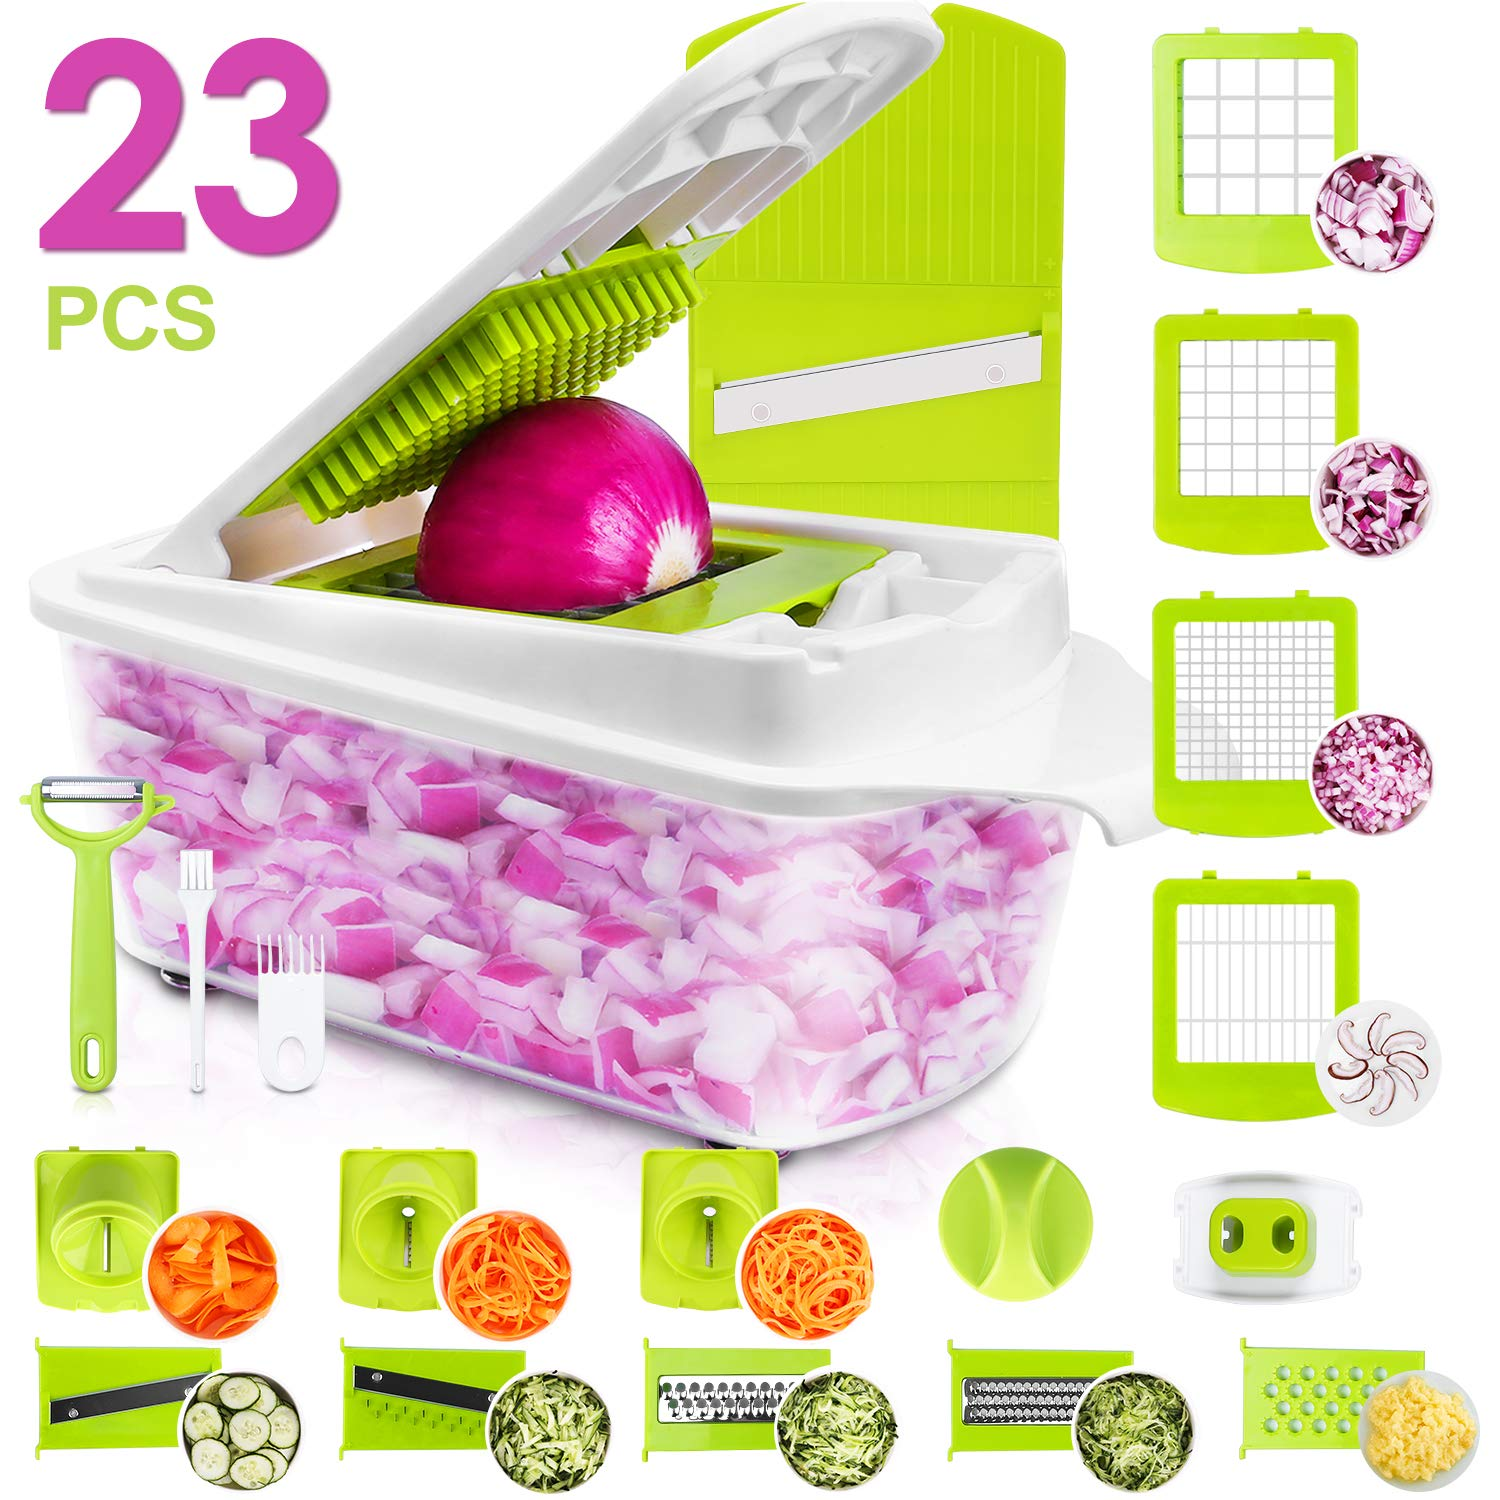 Sedhoom 23 in 1 Onion Chopper